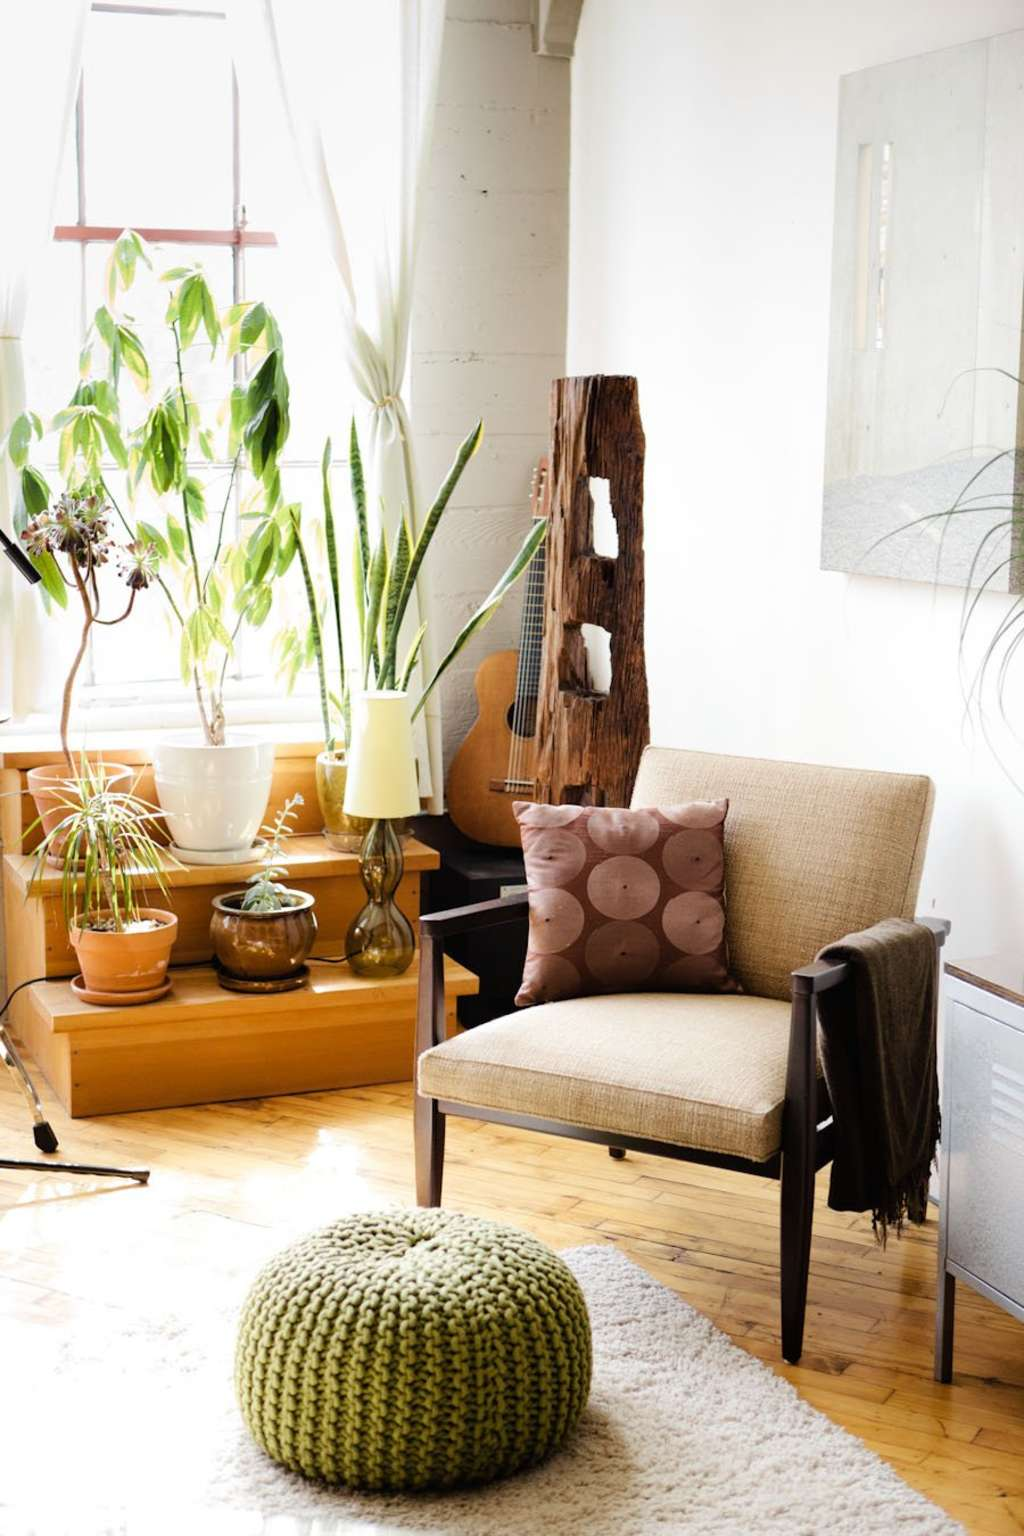 House Tour: A Converted Loft in Oakland